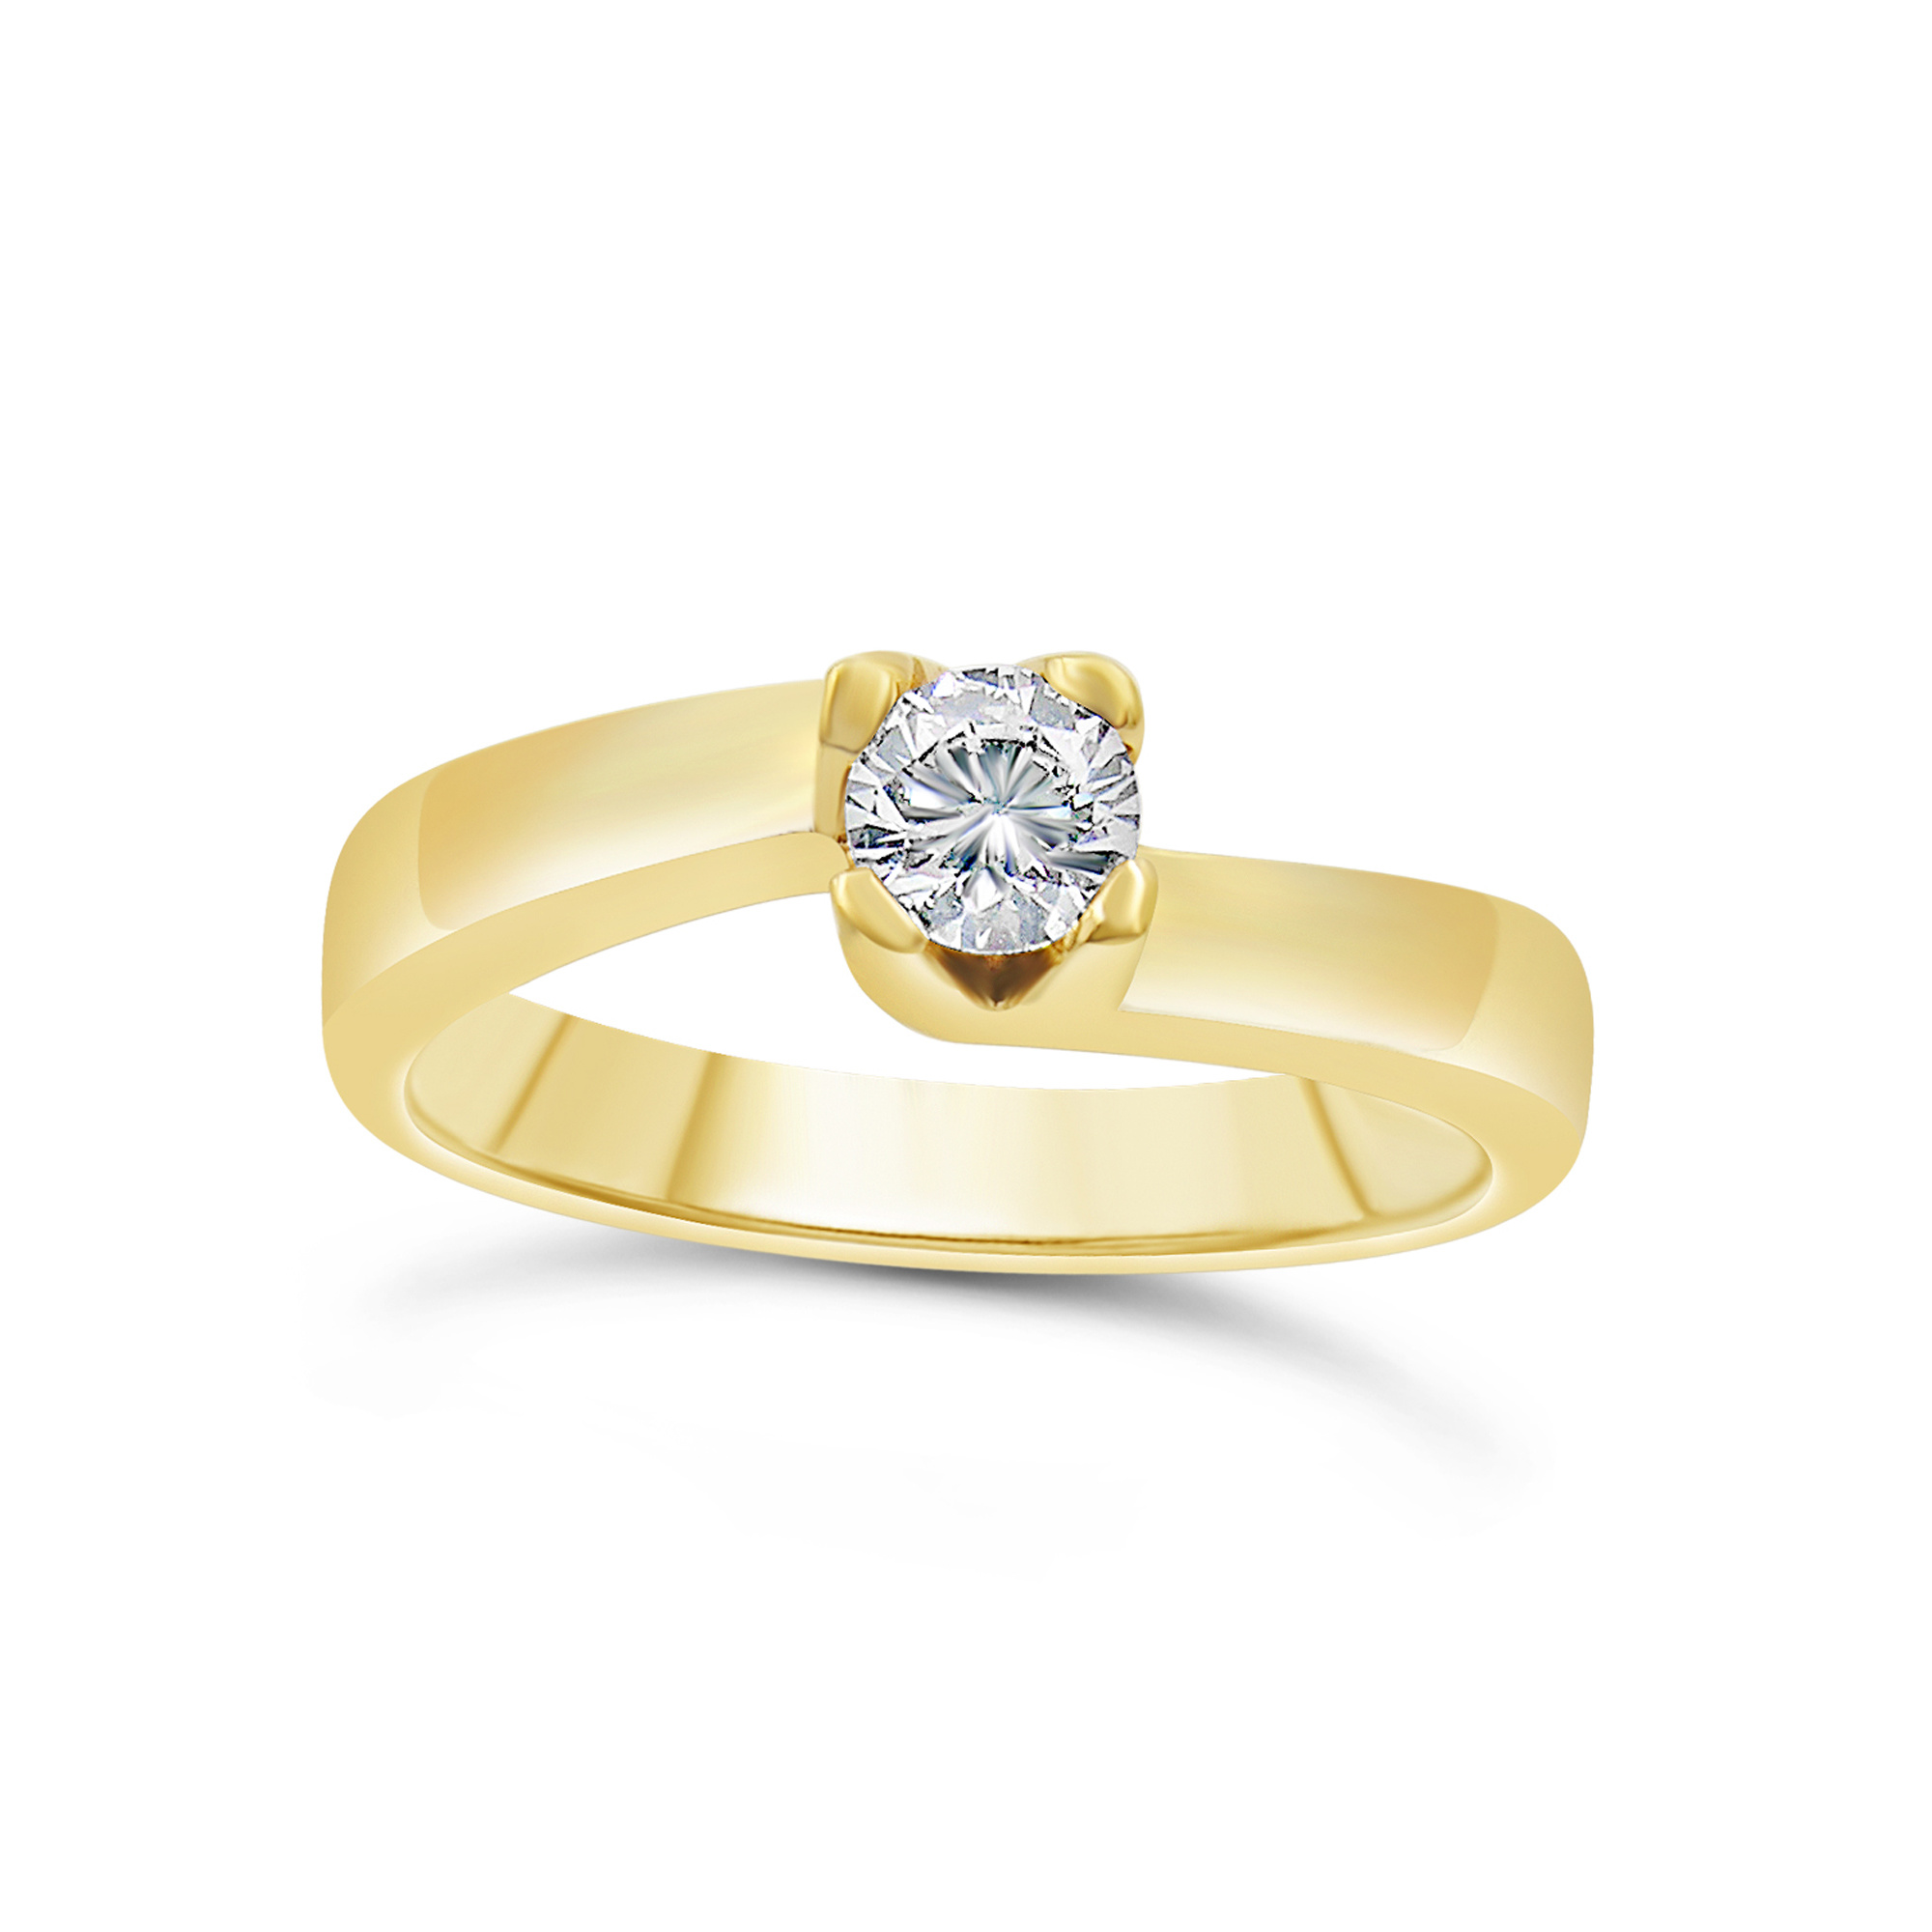 18kt yellow gold engagement ring with 0.34 ct diamond